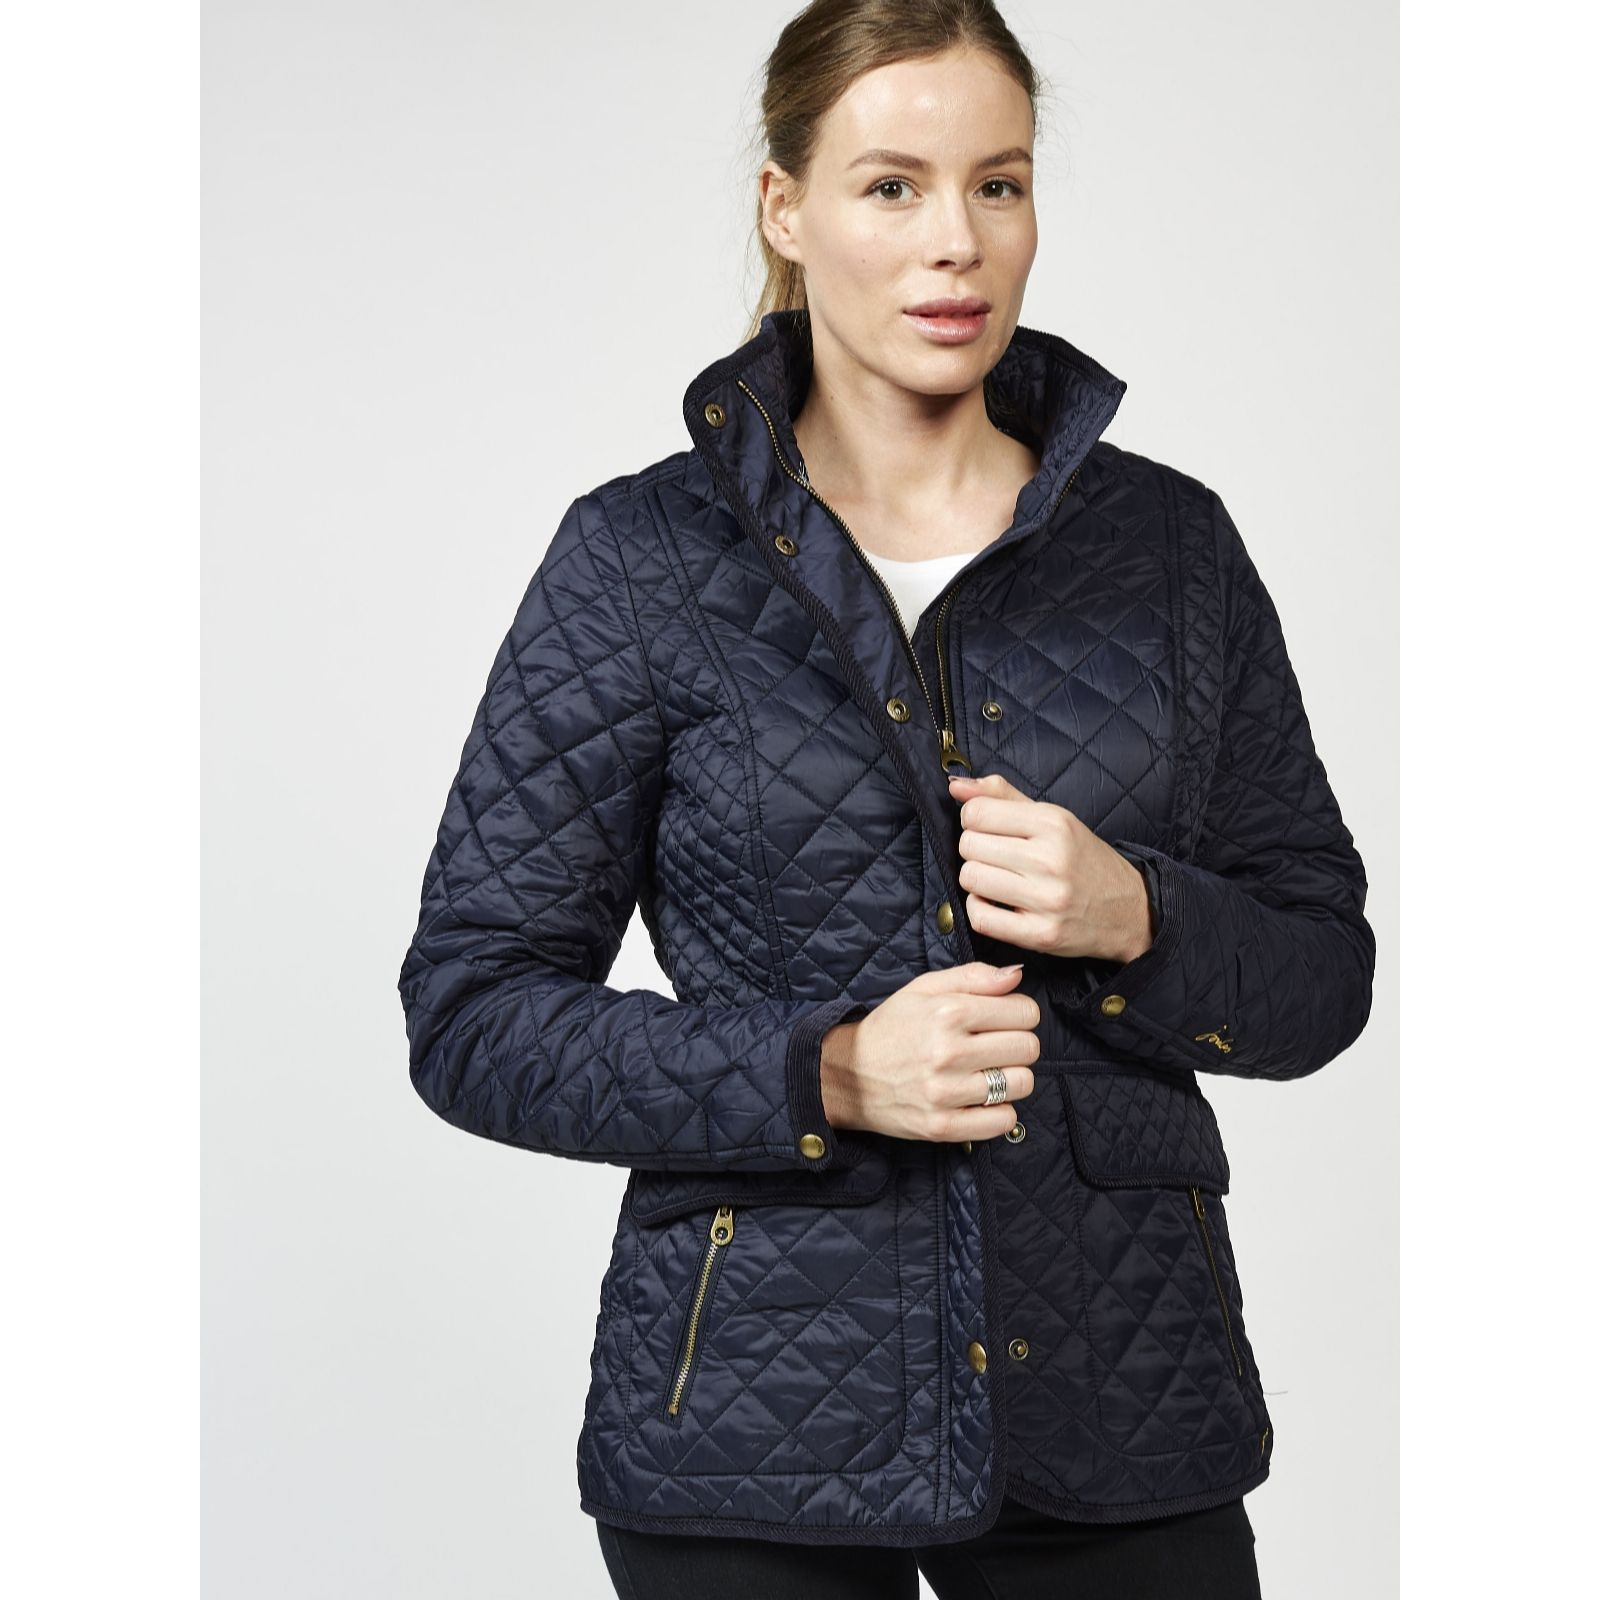 3e44503771d3 Joules Newdale Quilted Coat - QVC UK